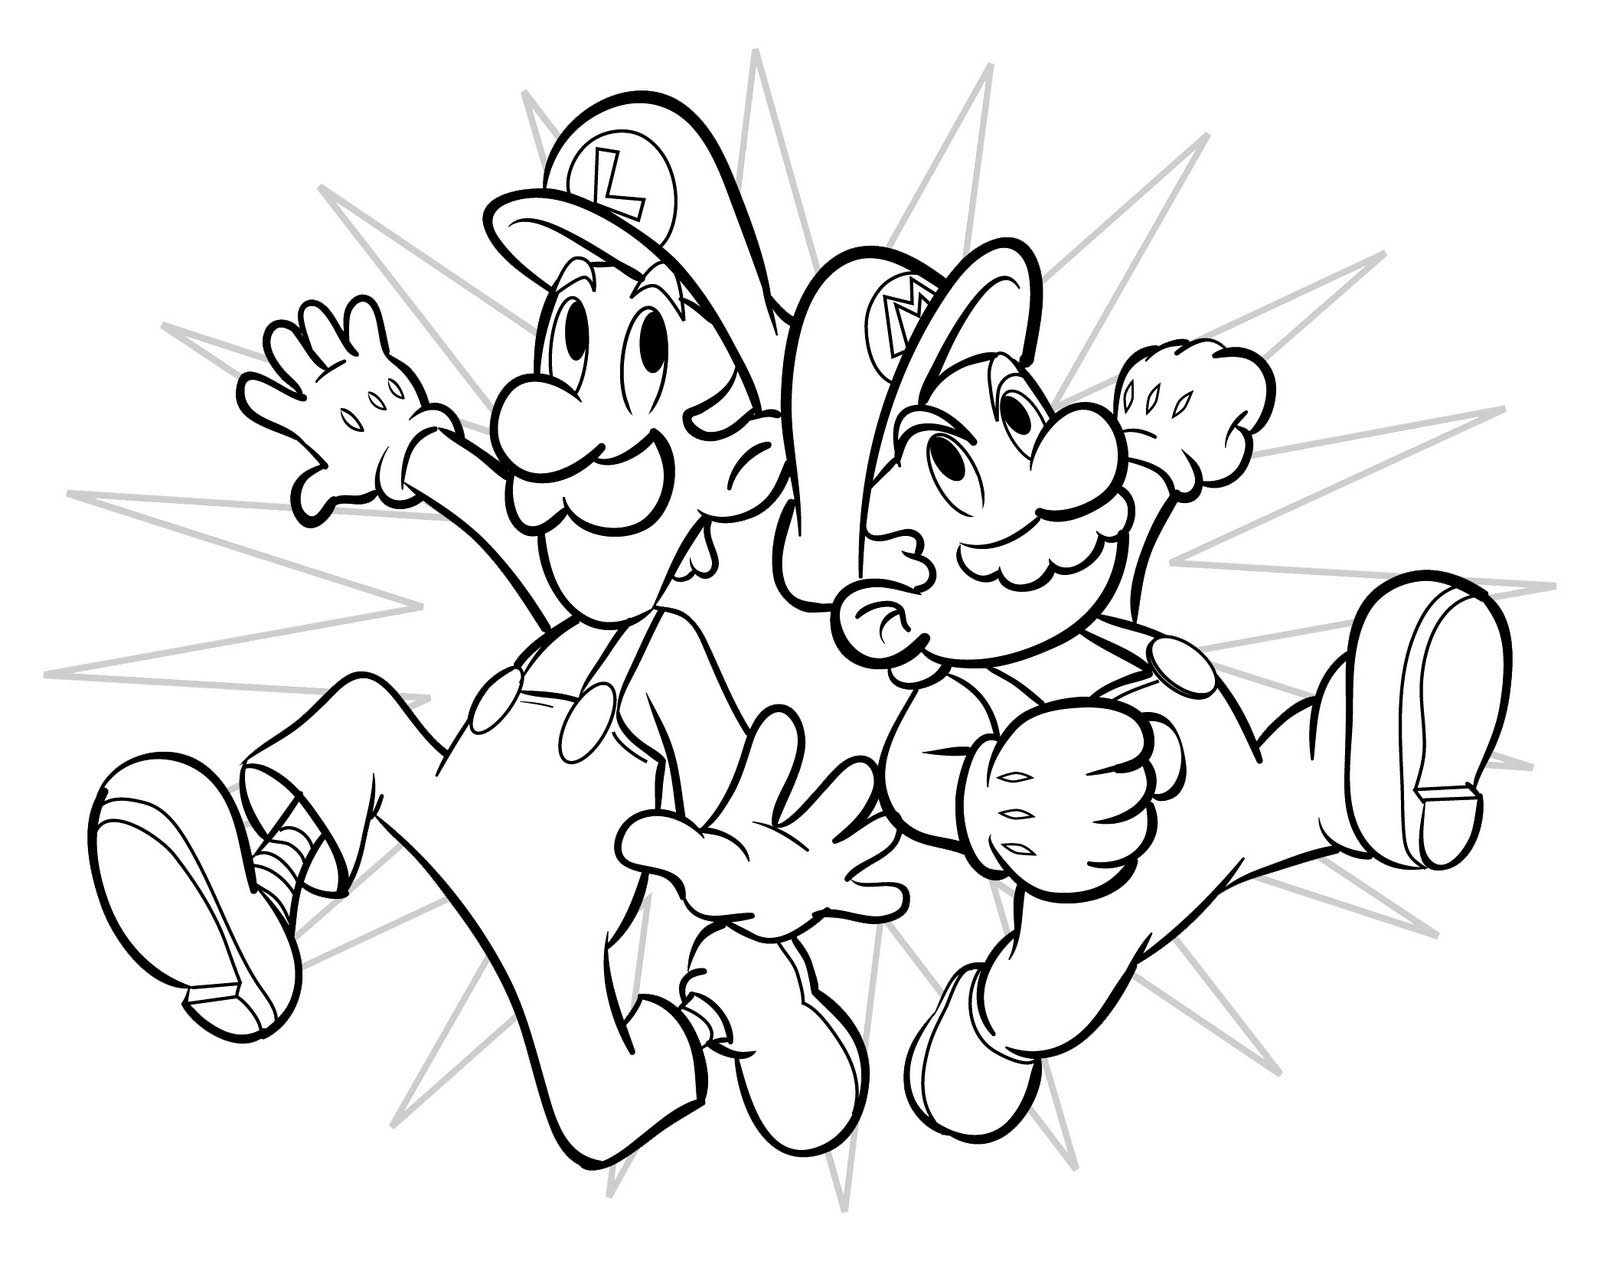 Super Mario Coloring Pages 3 Coloring Kids